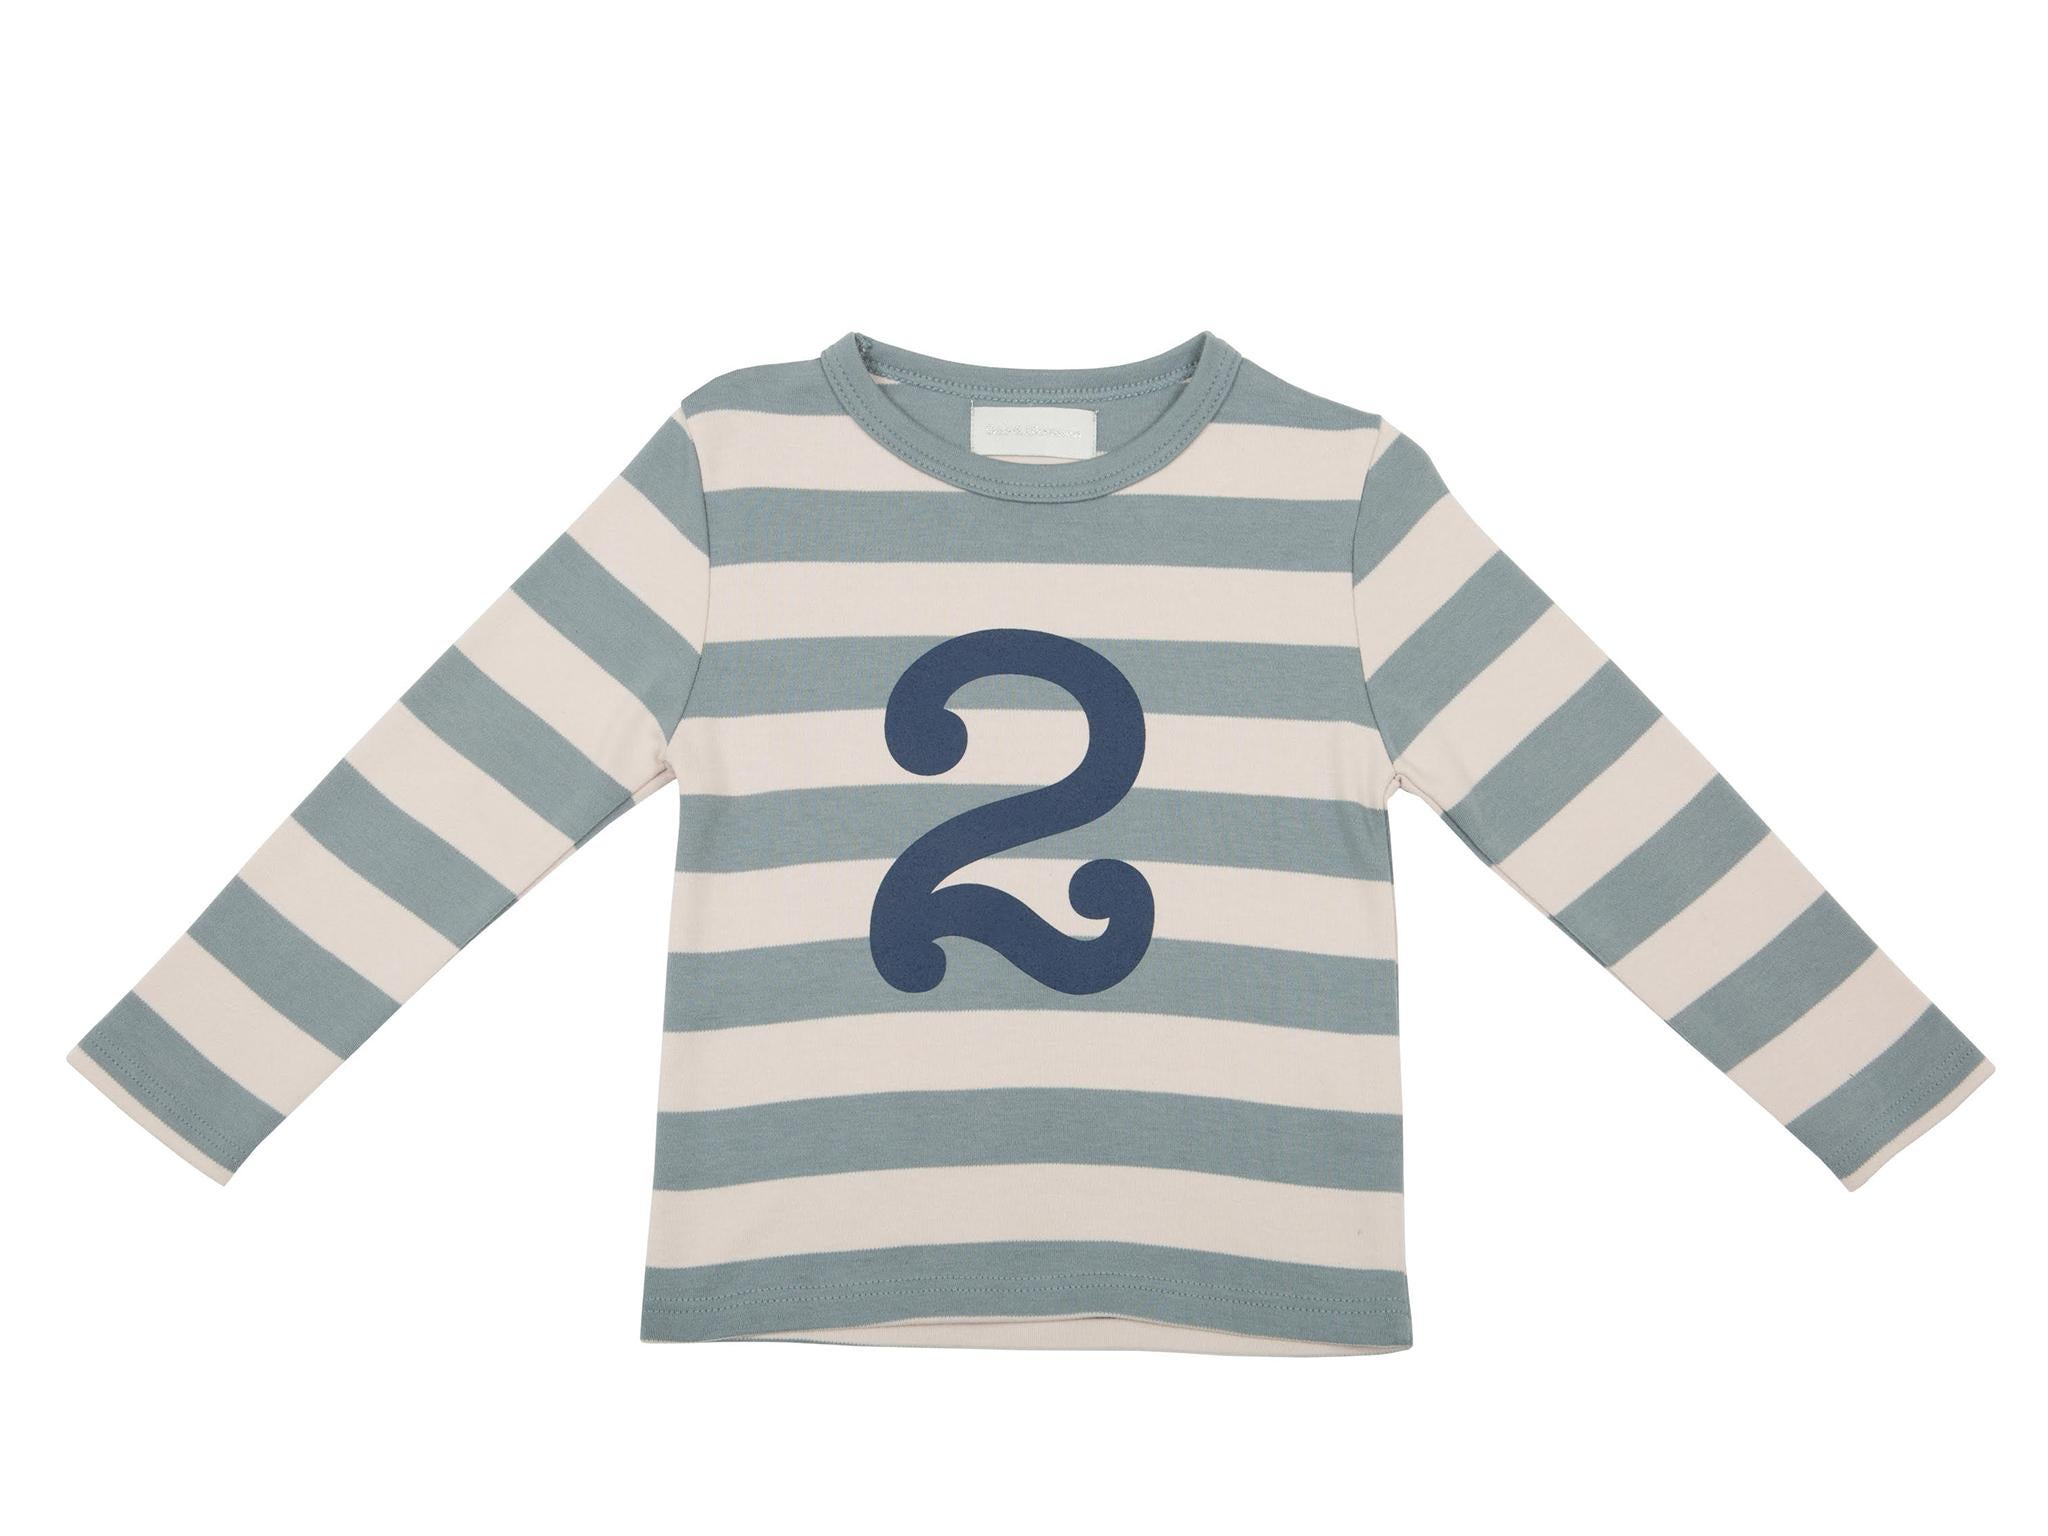 20 best gifts for 2-year-olds  089086597